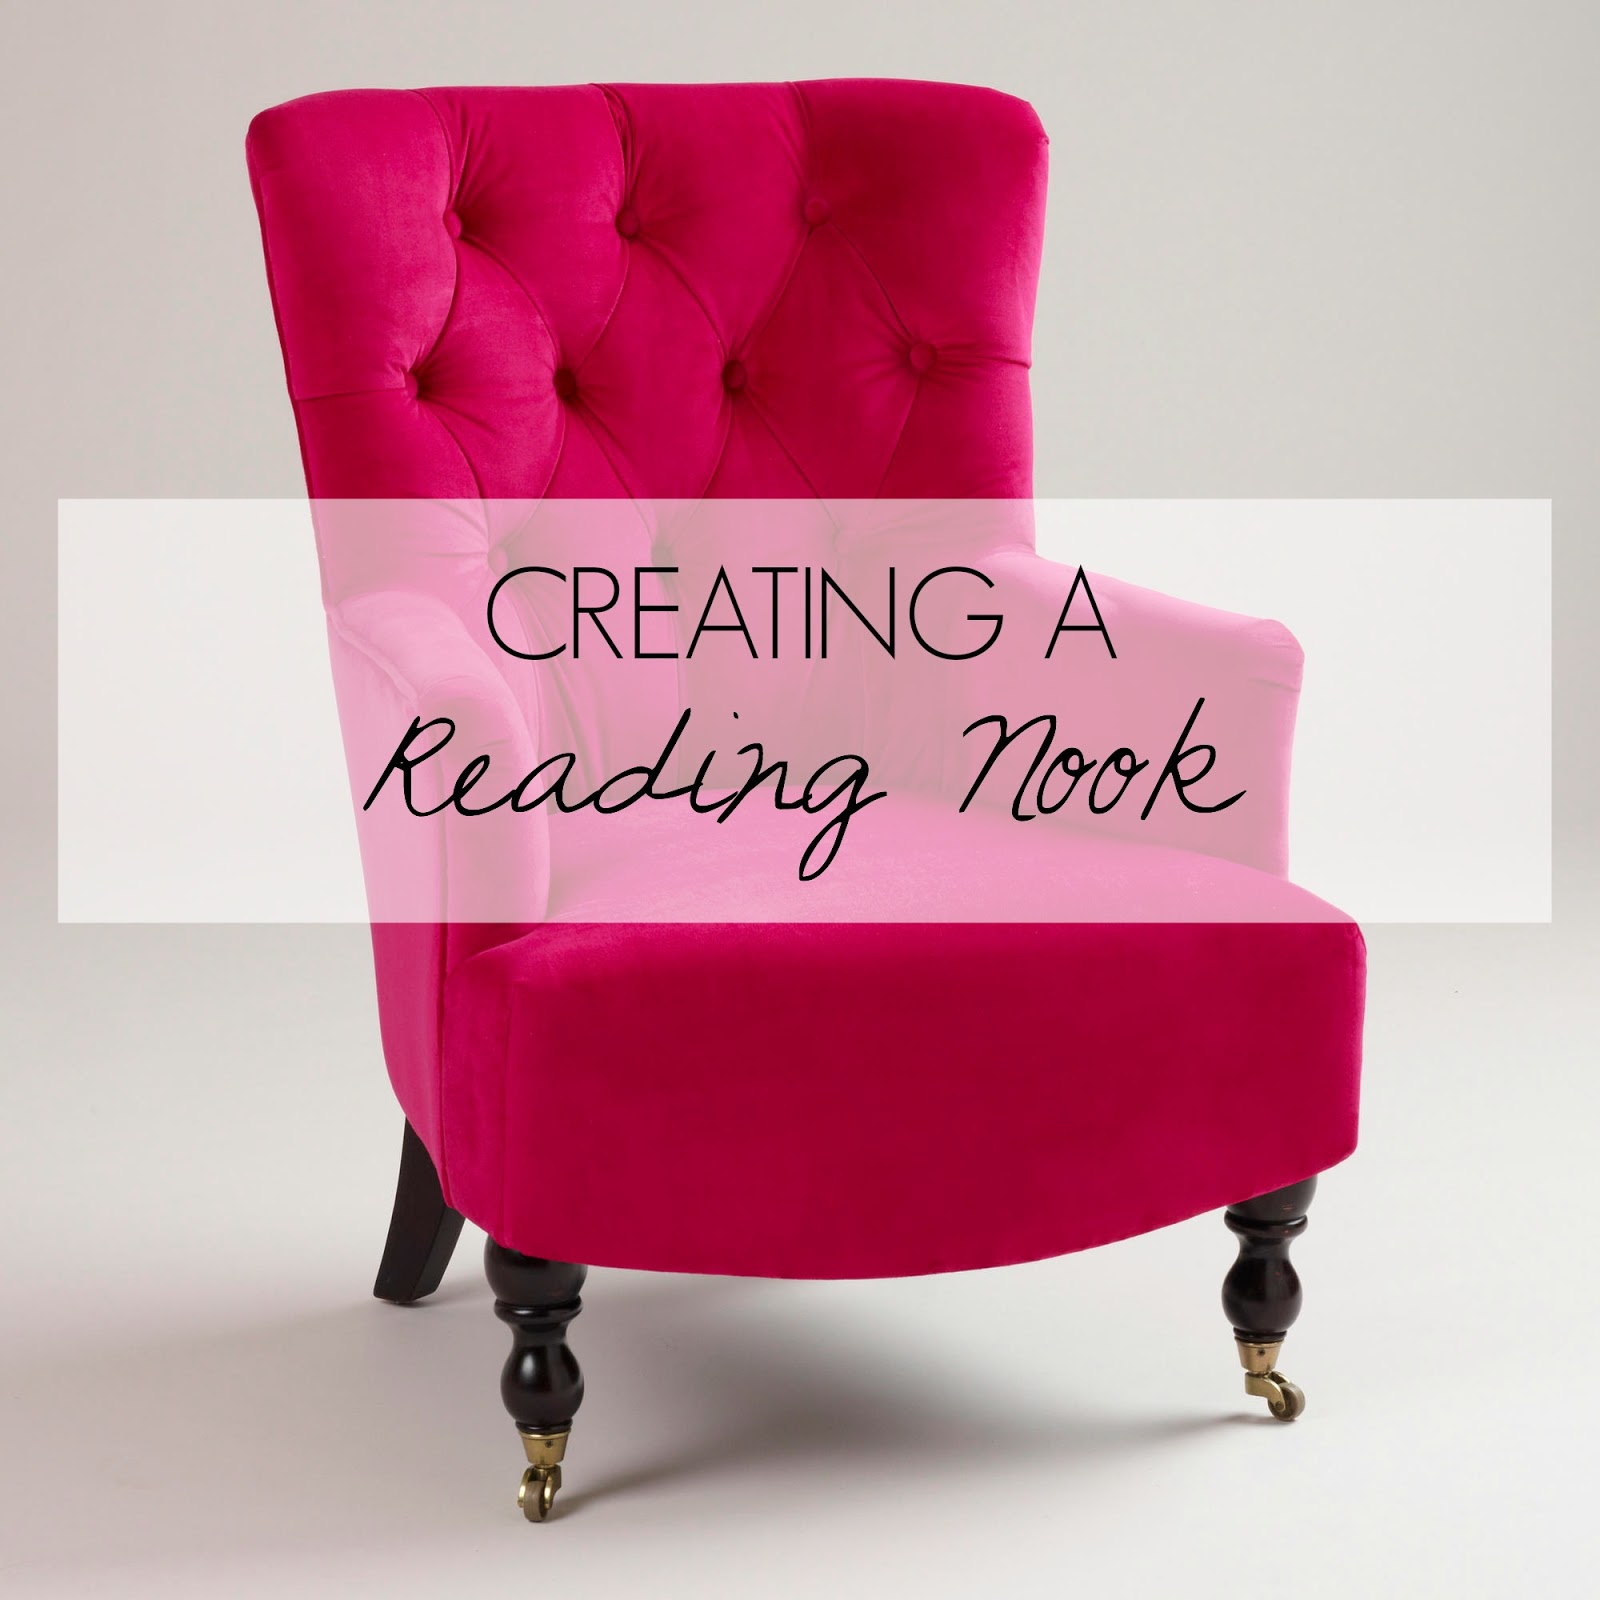 Defined Designs: Creating a Reading Nook